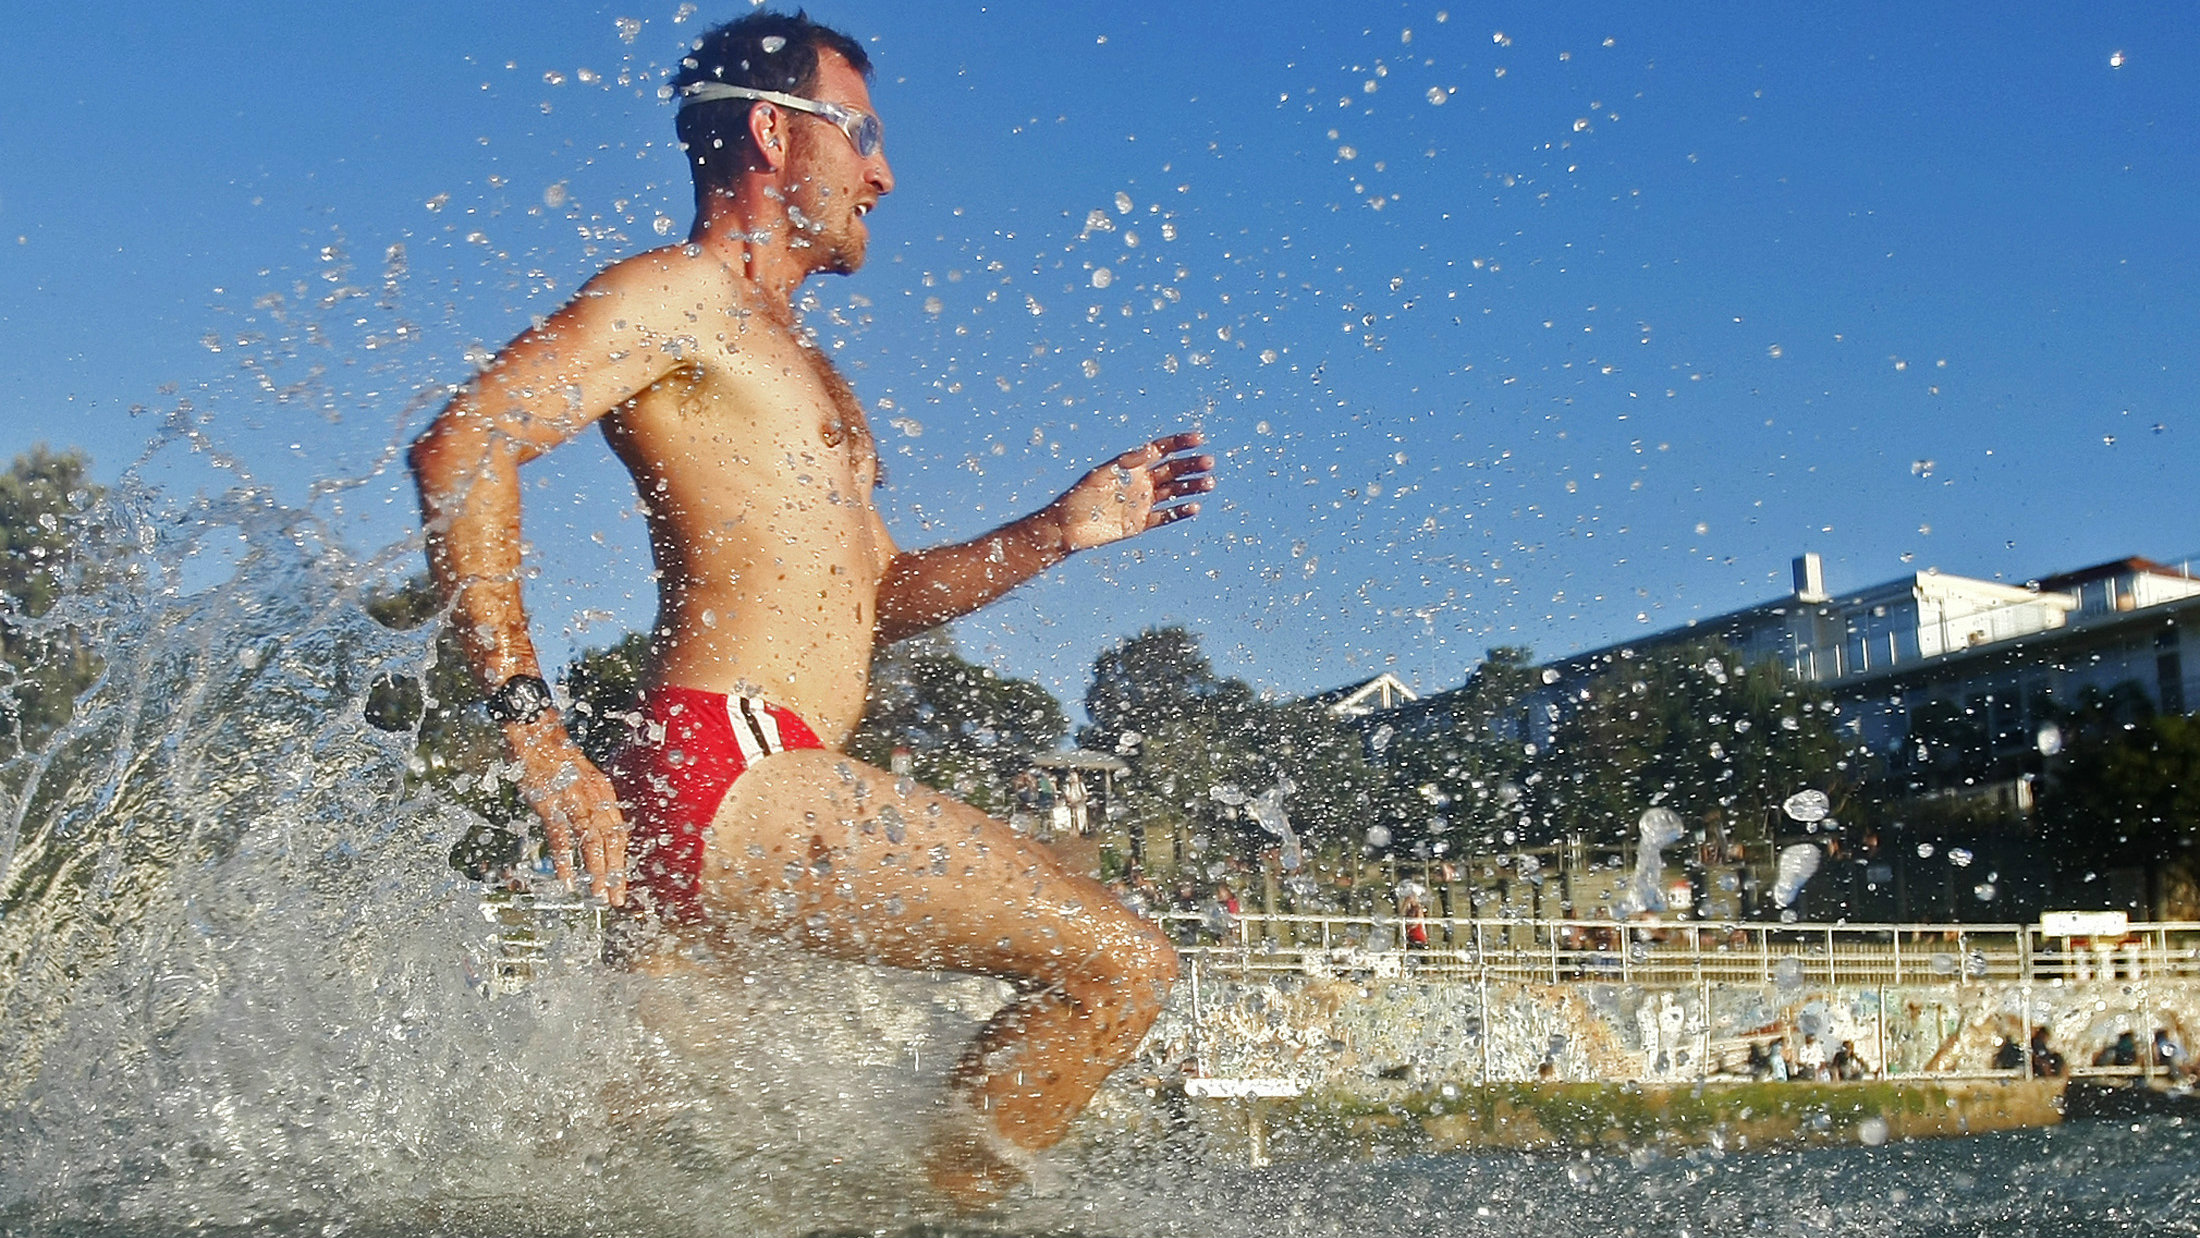 A man runs to the sea for an afternoon swim at Bondi Beach in Sydney December 13, 2012. Australia's iconic Bondi beach receives up to 40,000 visitors on a busy summer day, according to local authorities.